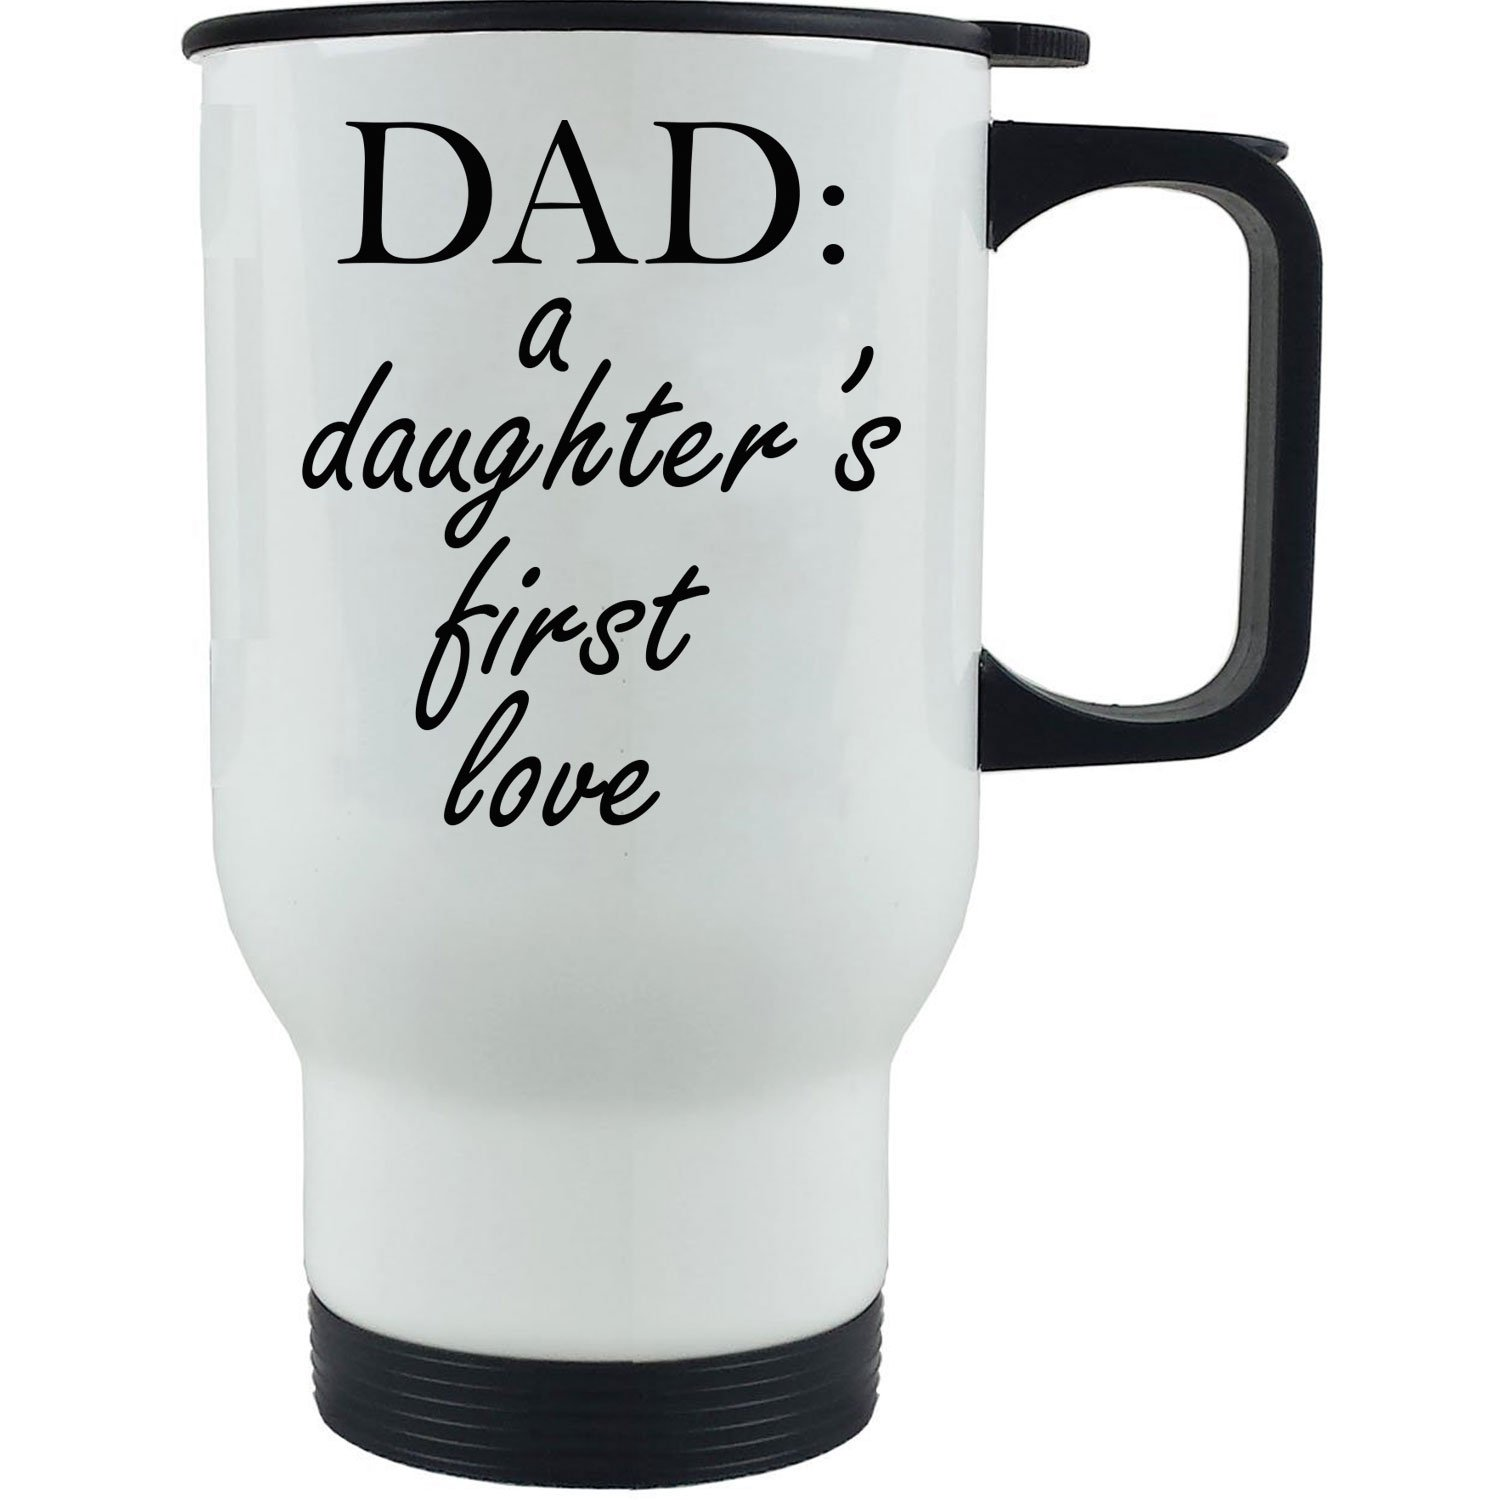 Dad: A Daughter's First Love 14-Ounce White Stainless Steel Travel Coffee Mug - Great Gift for Father's Day, Birthday, or Christmas Gift for Dads and Fathers